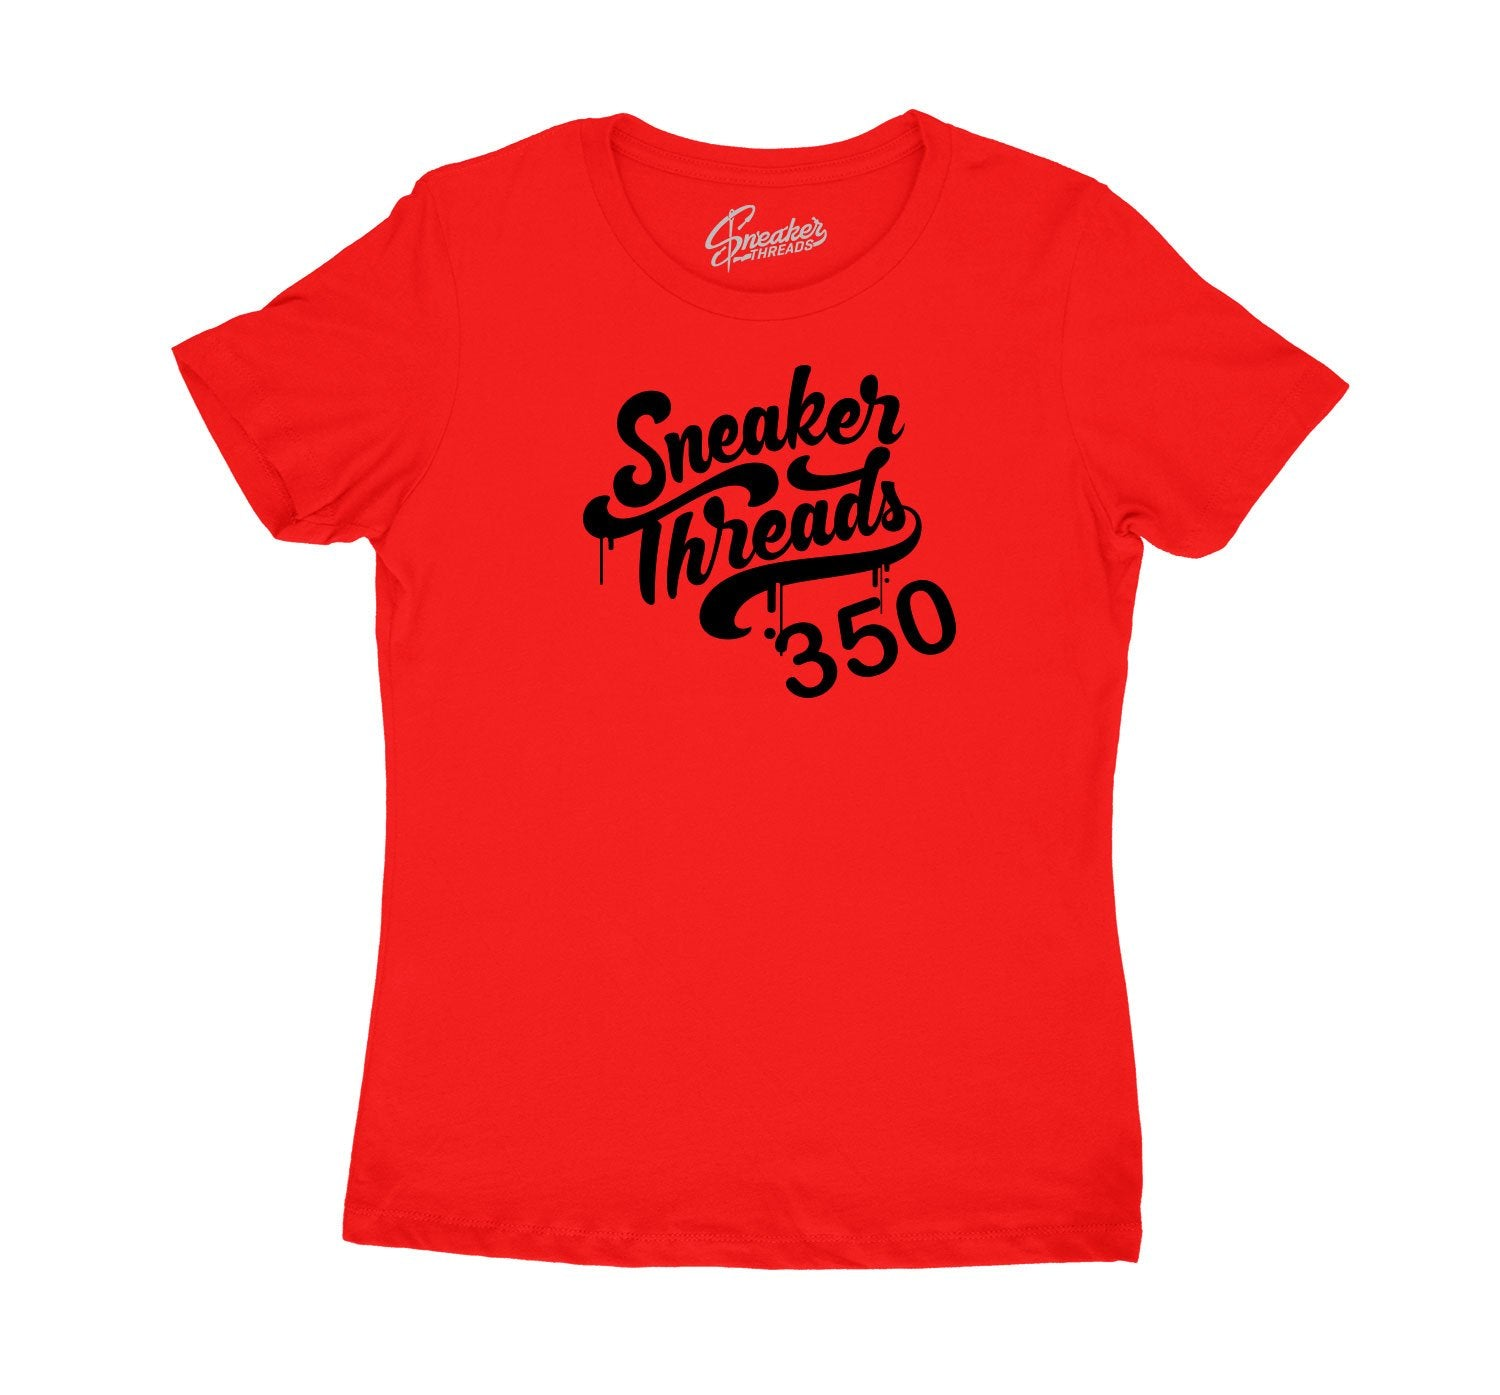 Red ladies tees designed to match perfect with yeezy v2 black red sneakers